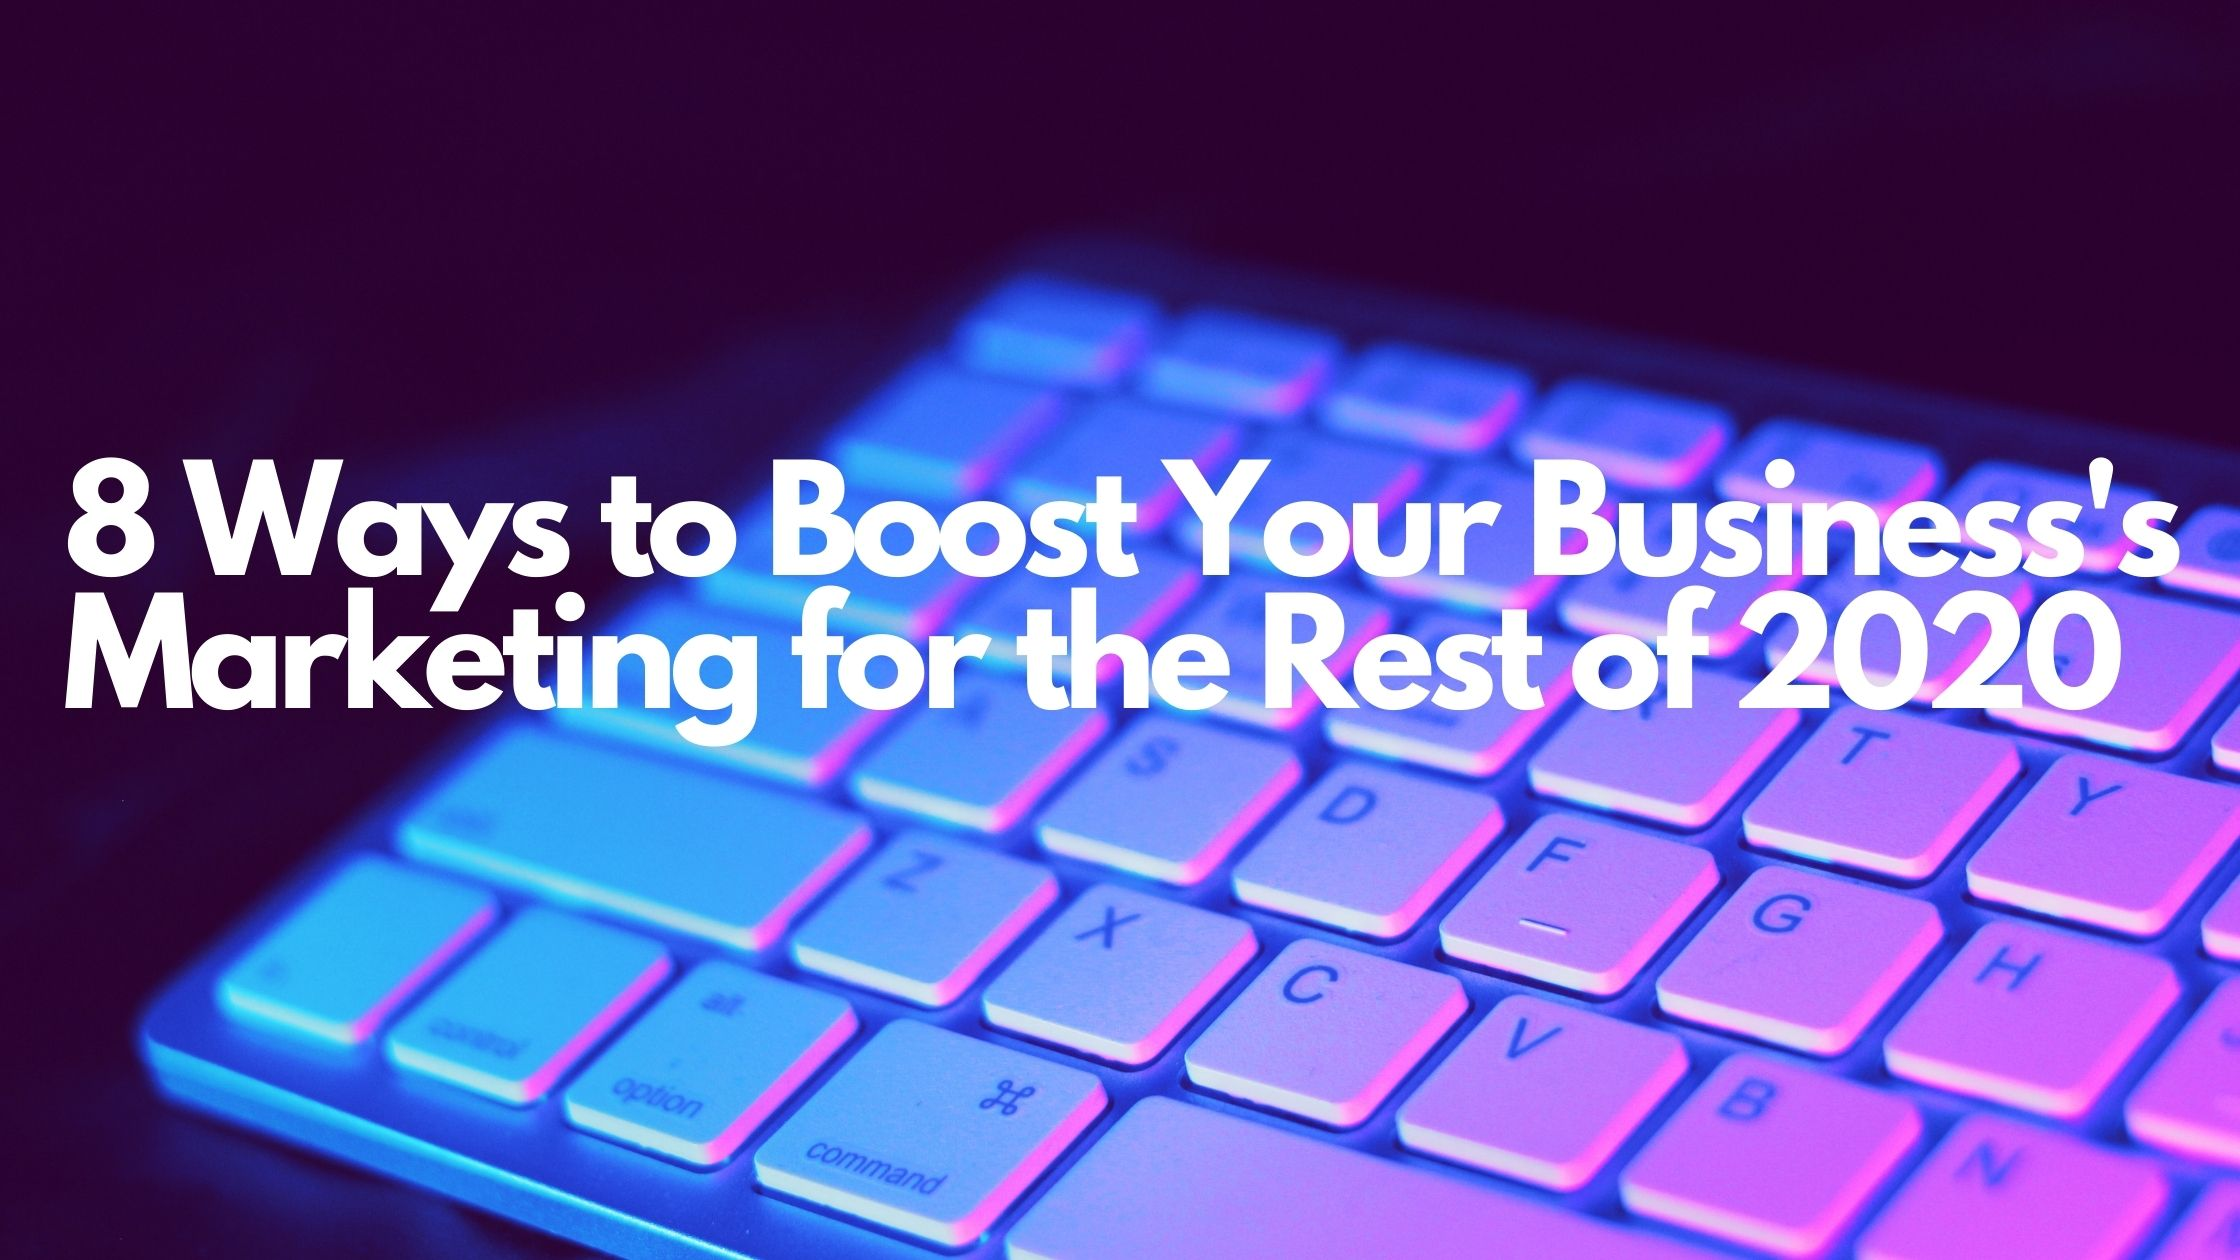 keyboard with 8 ways to boost your business's marketing for the rest of 2020